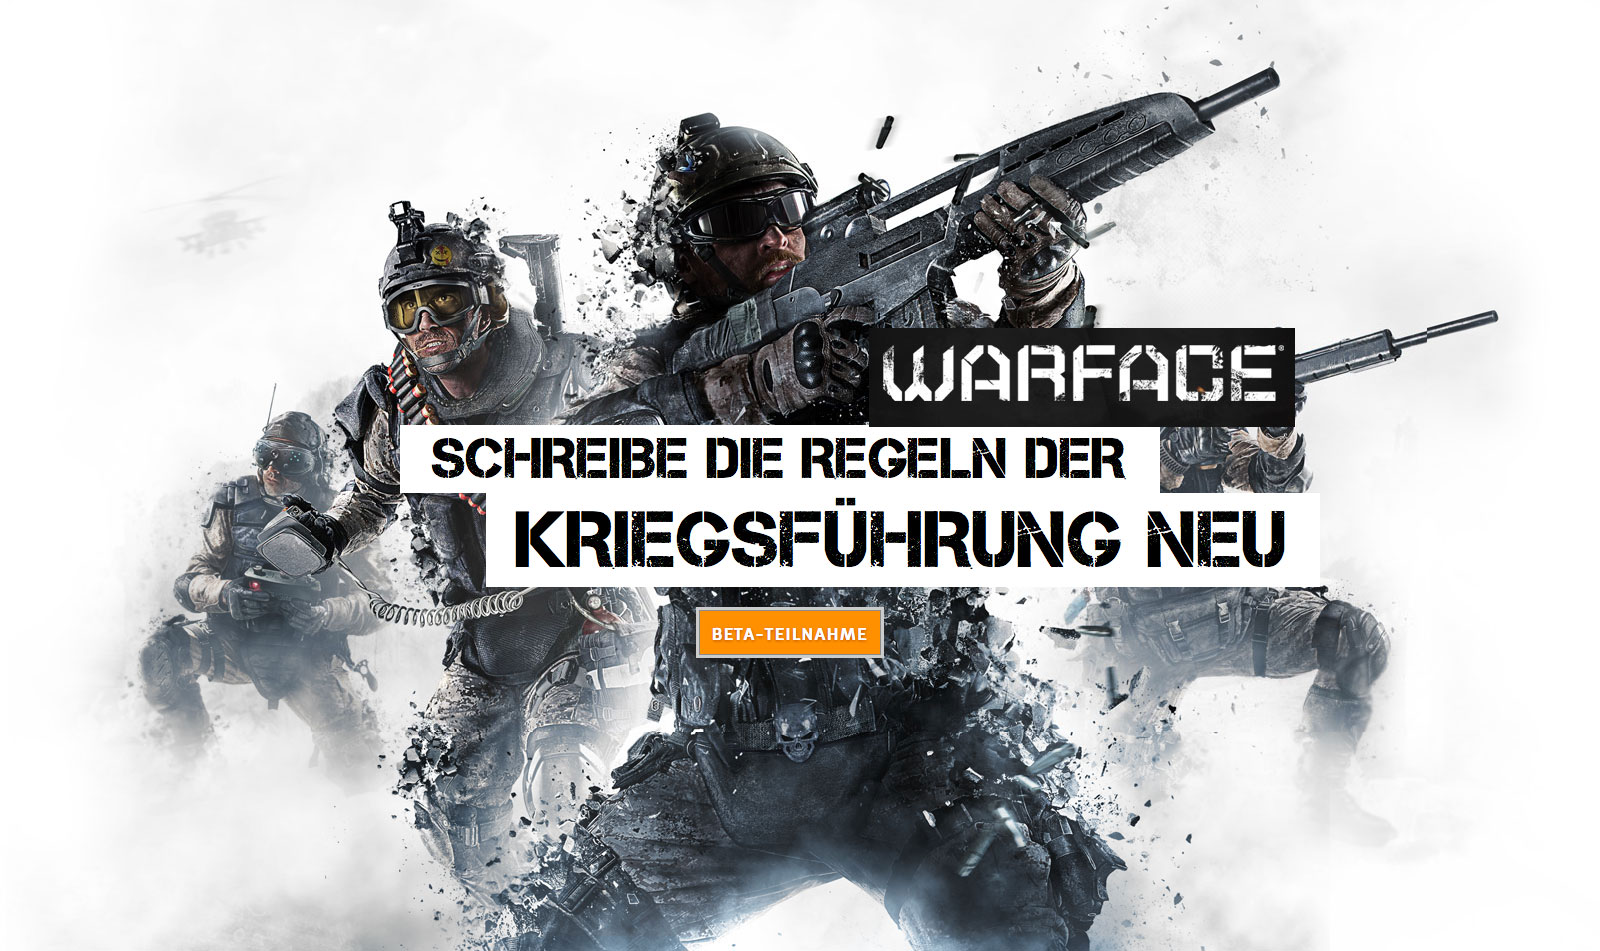 Bericht aus der Closed Beta: Neuer Warface Trailer gesichtet!